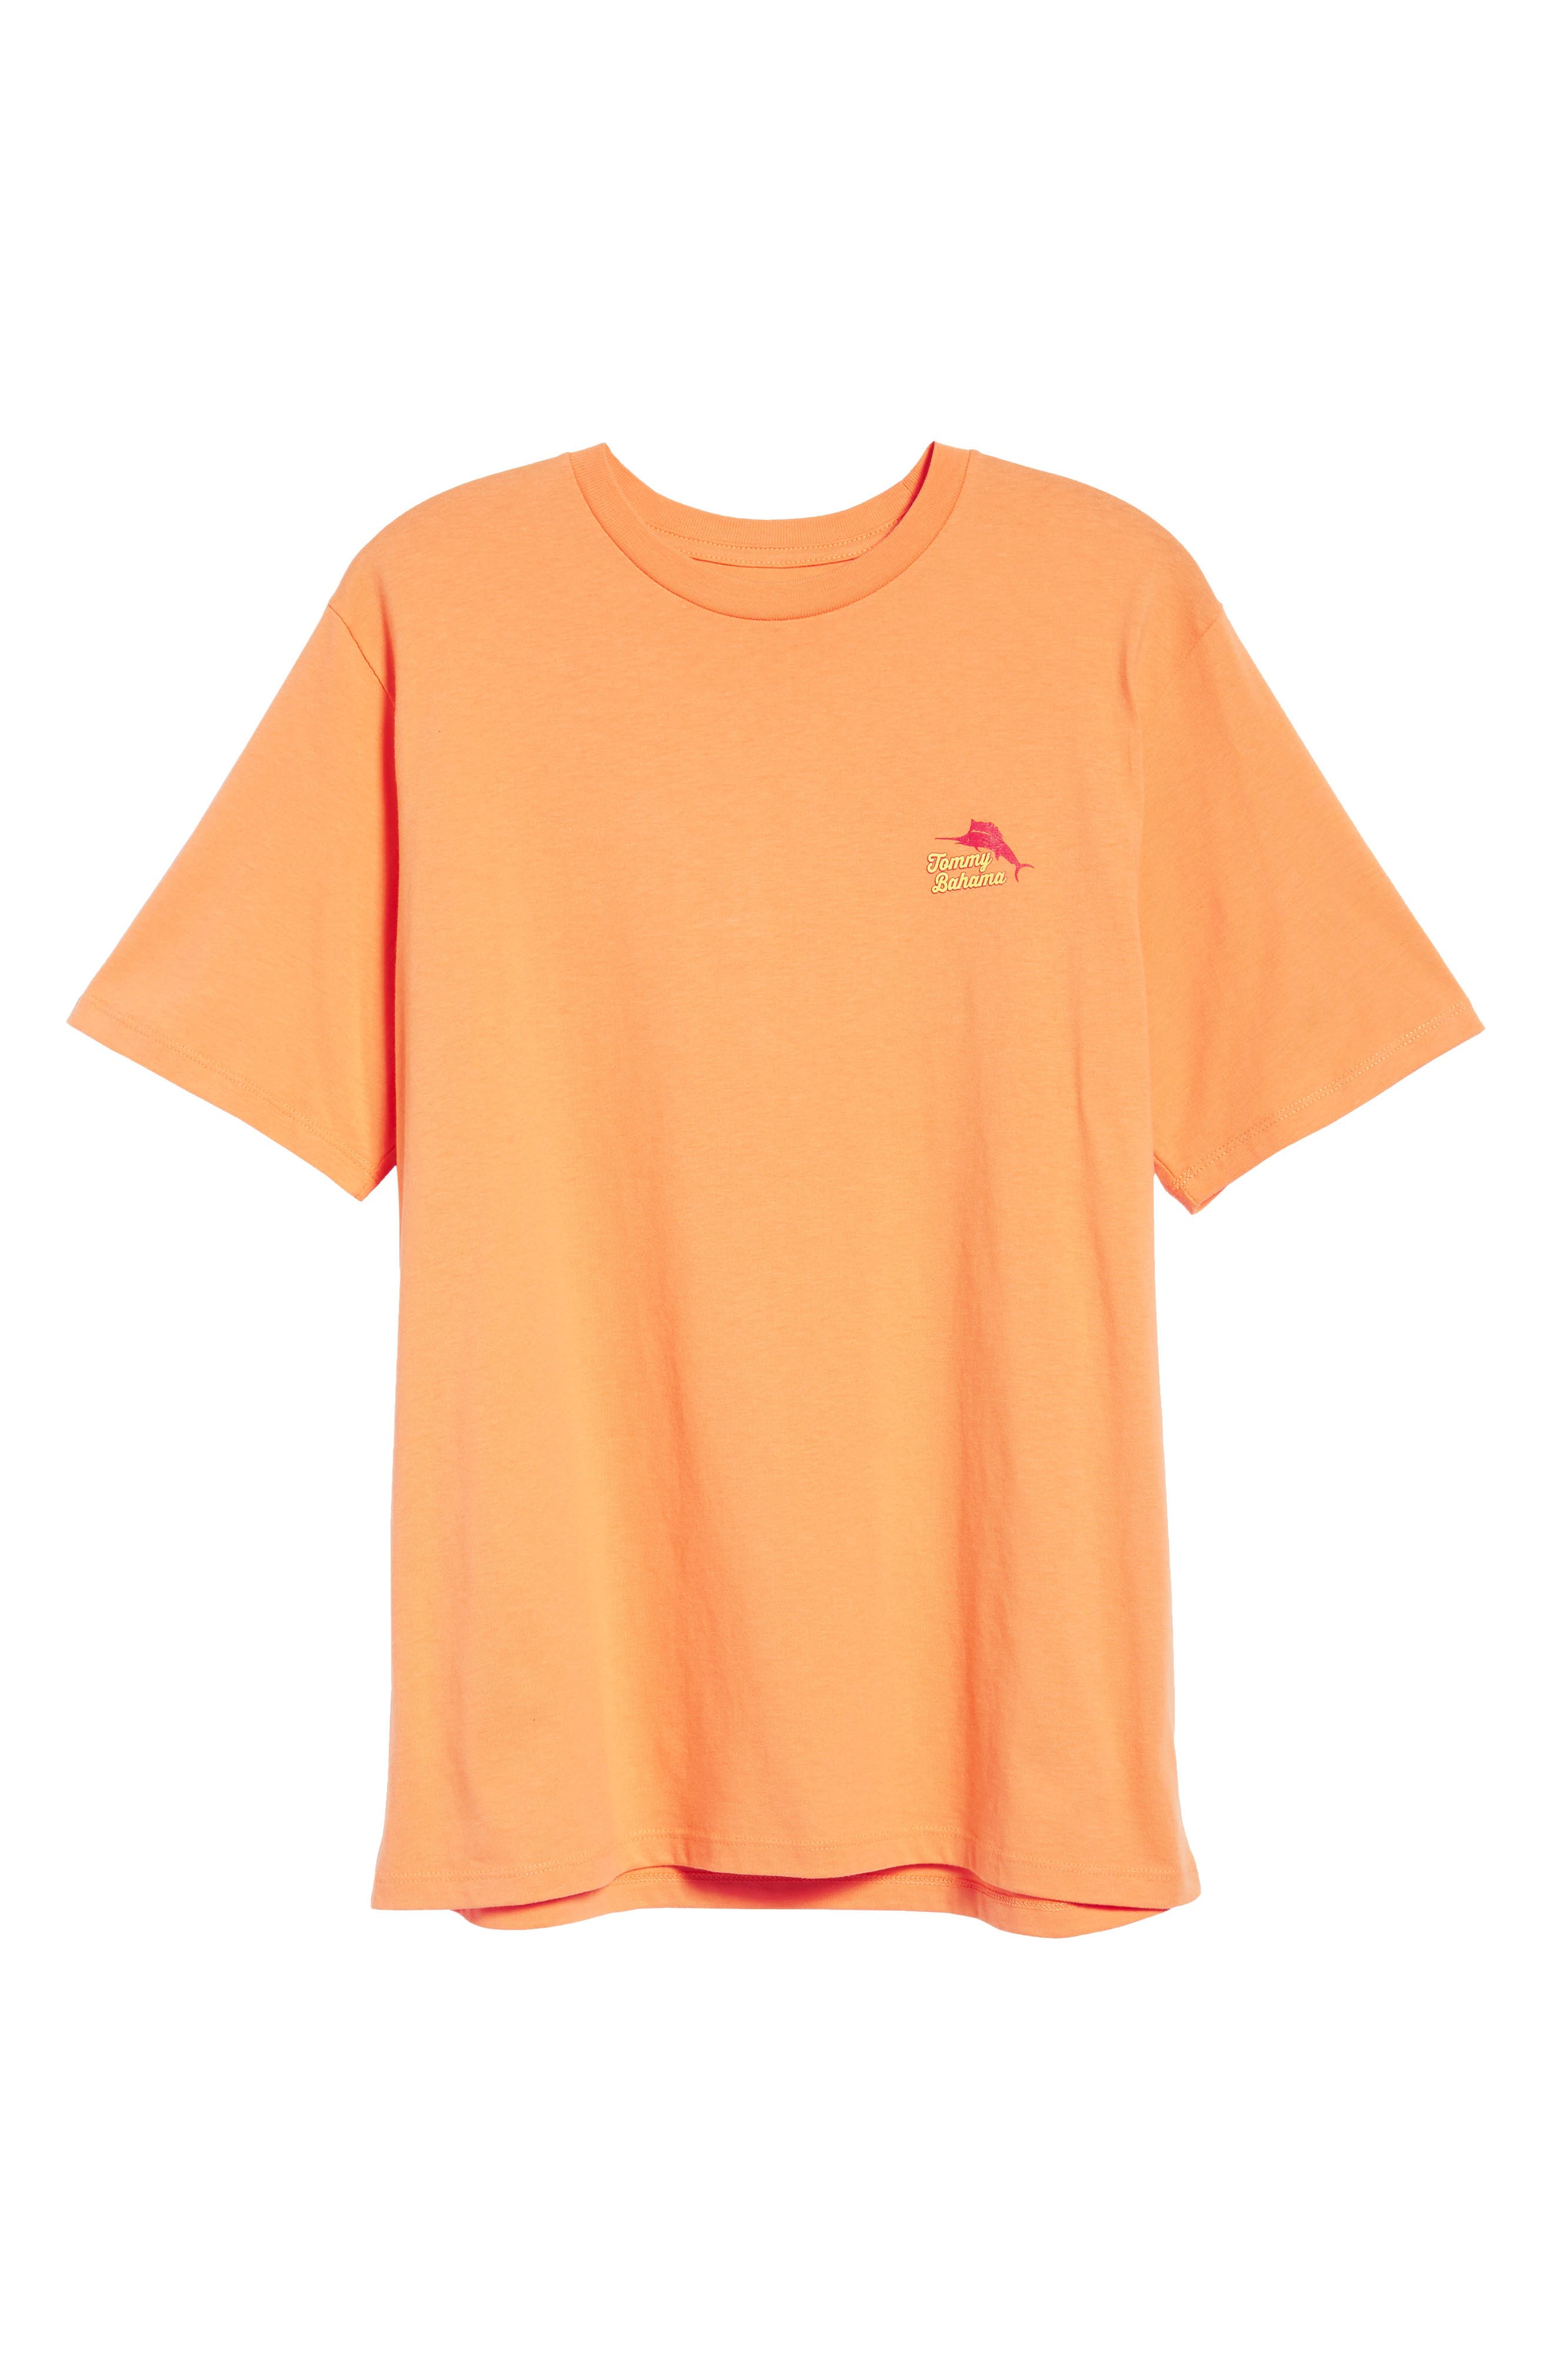 Ryes to the Occasion T-Shirt,                             Alternate thumbnail 6, color,                             800